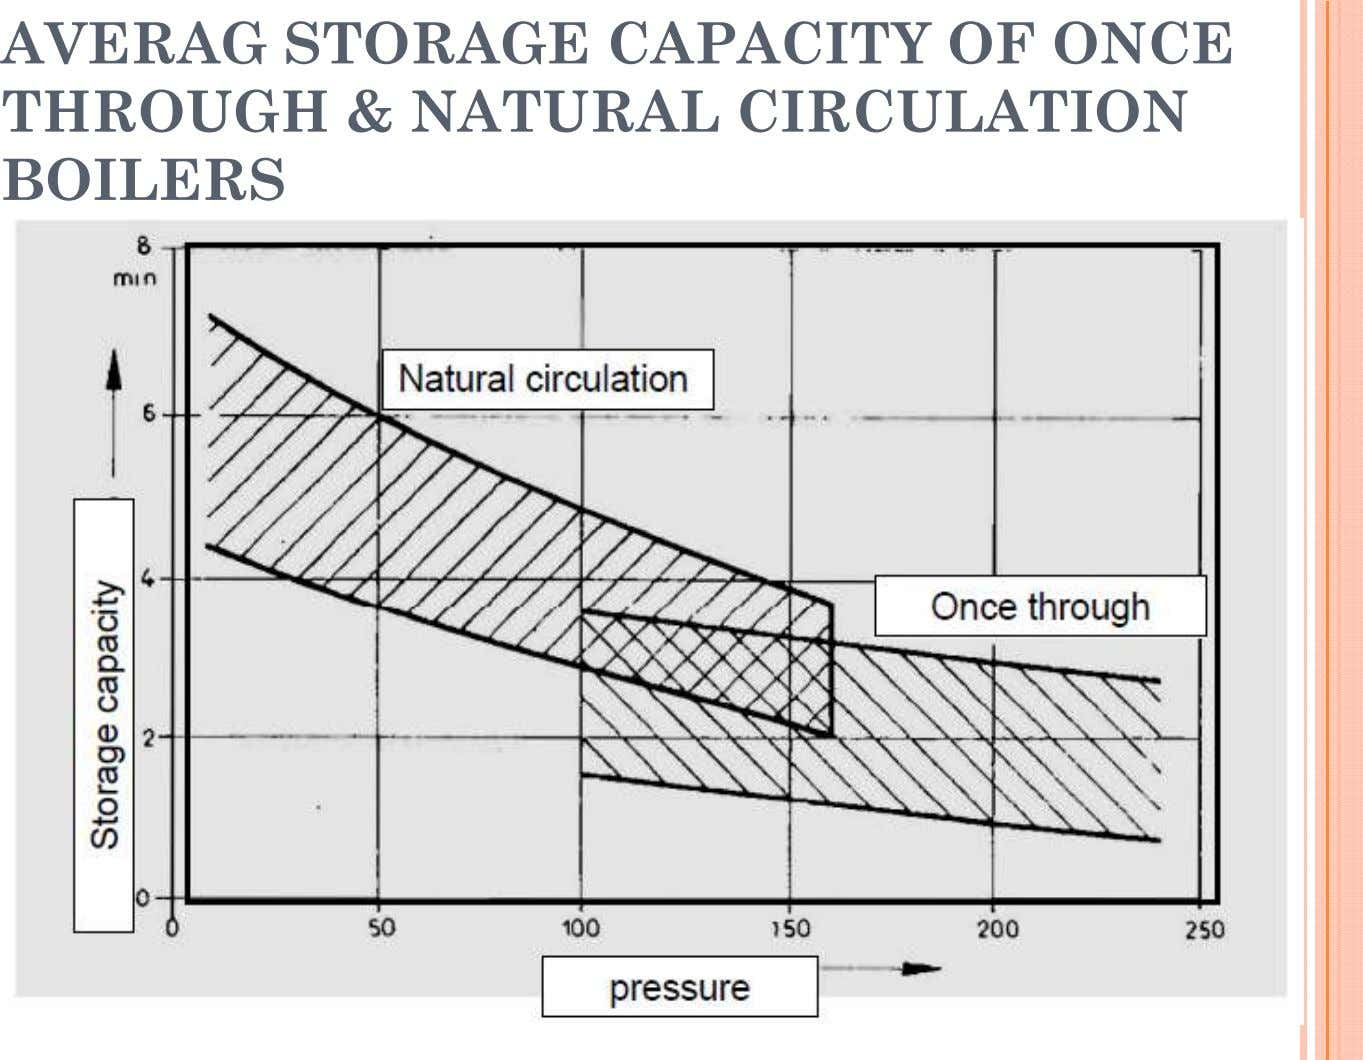 AVERAG STORAGE CAPACITY OF ONCE THROUGH & NATURAL CIRCULATION BOILERS